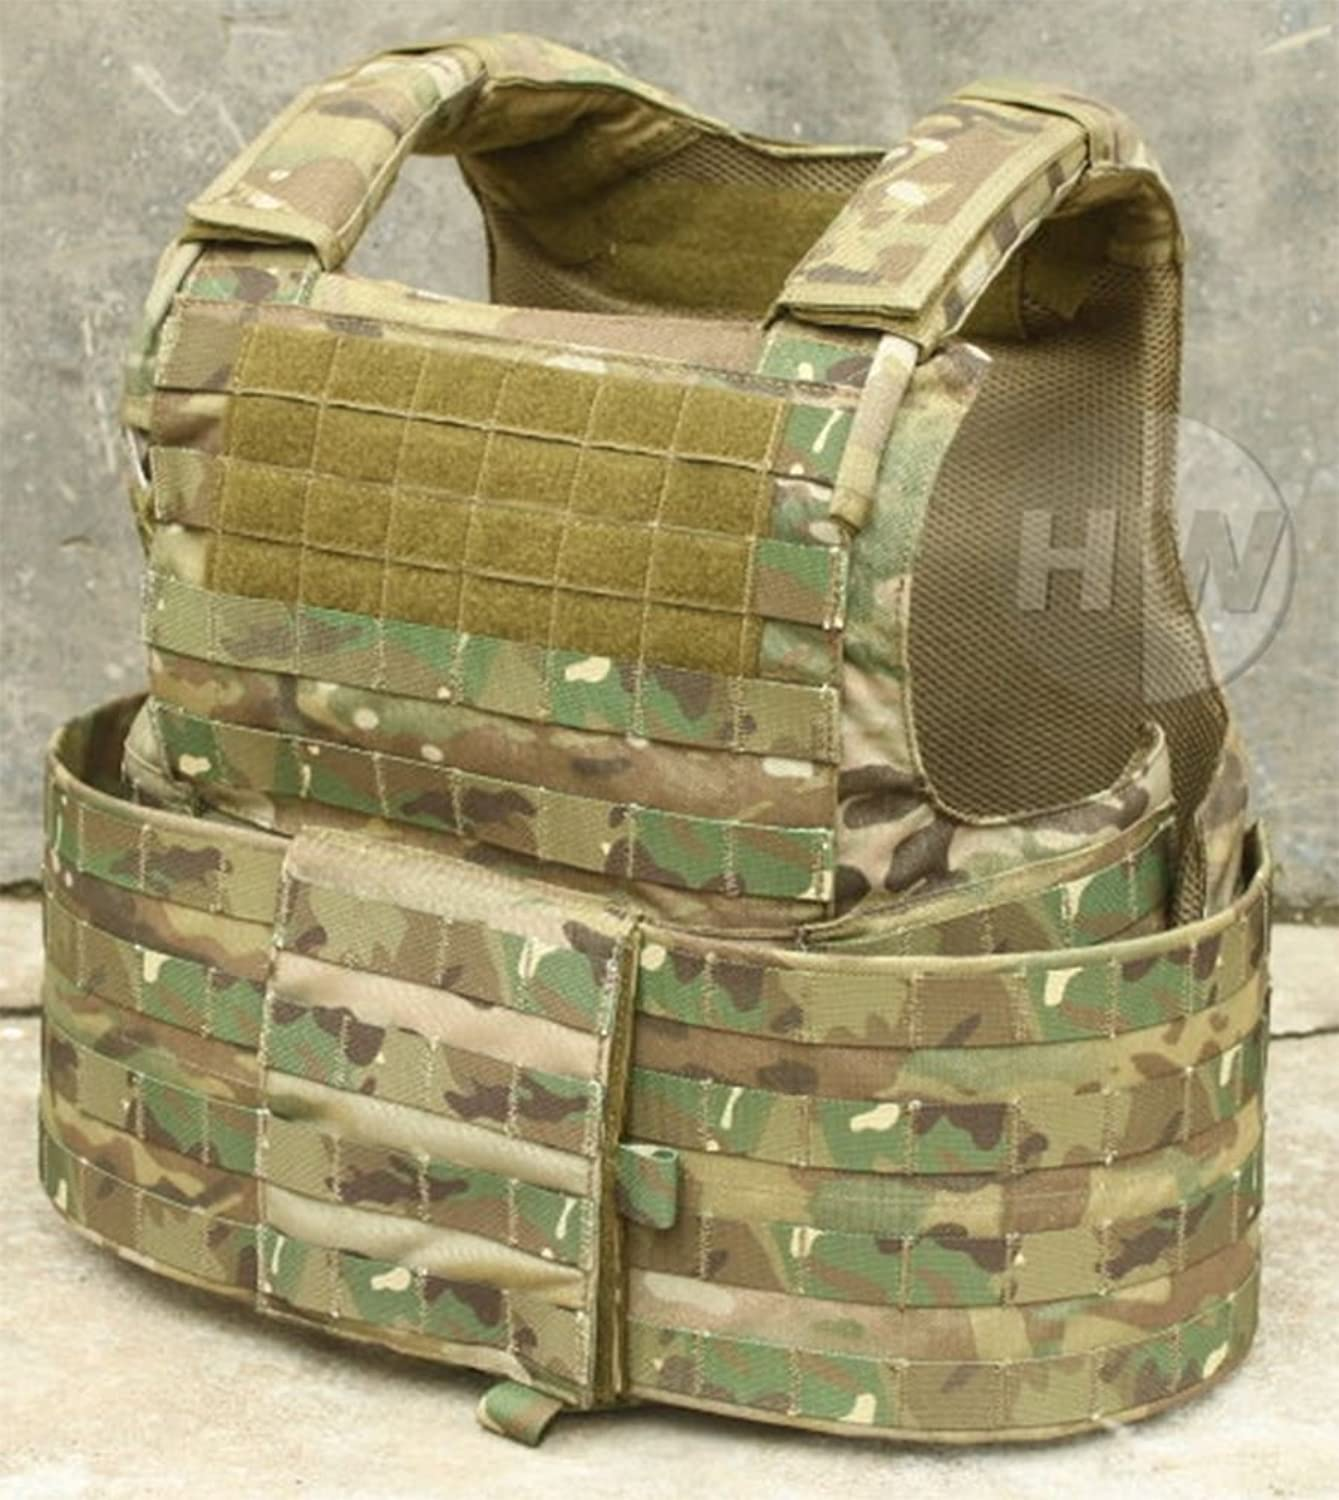 AIRSOFT CIR FORCE RECON ANGRIFF WESTE MOLLE BRUST RIG MULTICAM MTP PARACLETE RAV